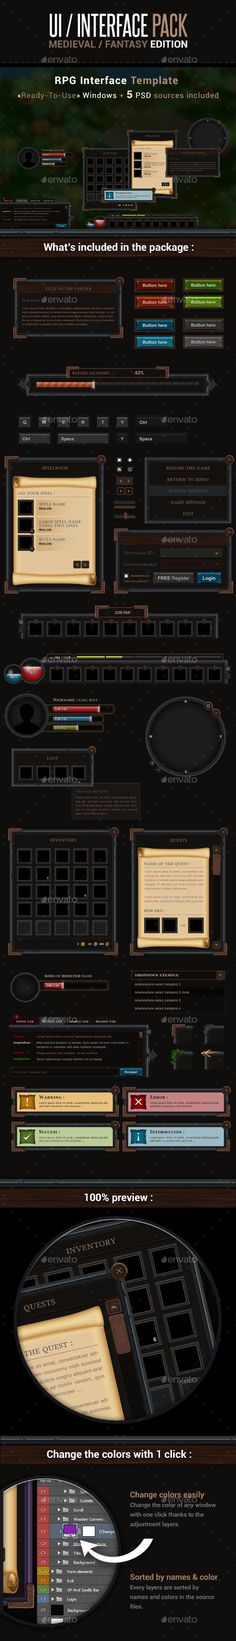 Game UI Interface Pack - Medieval Fantasy Edition by eldamien Description : This pack contains multiple ready-to-use windows for your interface / UI. You can also make your own windows by usi Game Interface, Interface Design, Game Card Design, Card Ui, Web Design, Pixel Art Games, Game Background, Game Icon, Game Concept